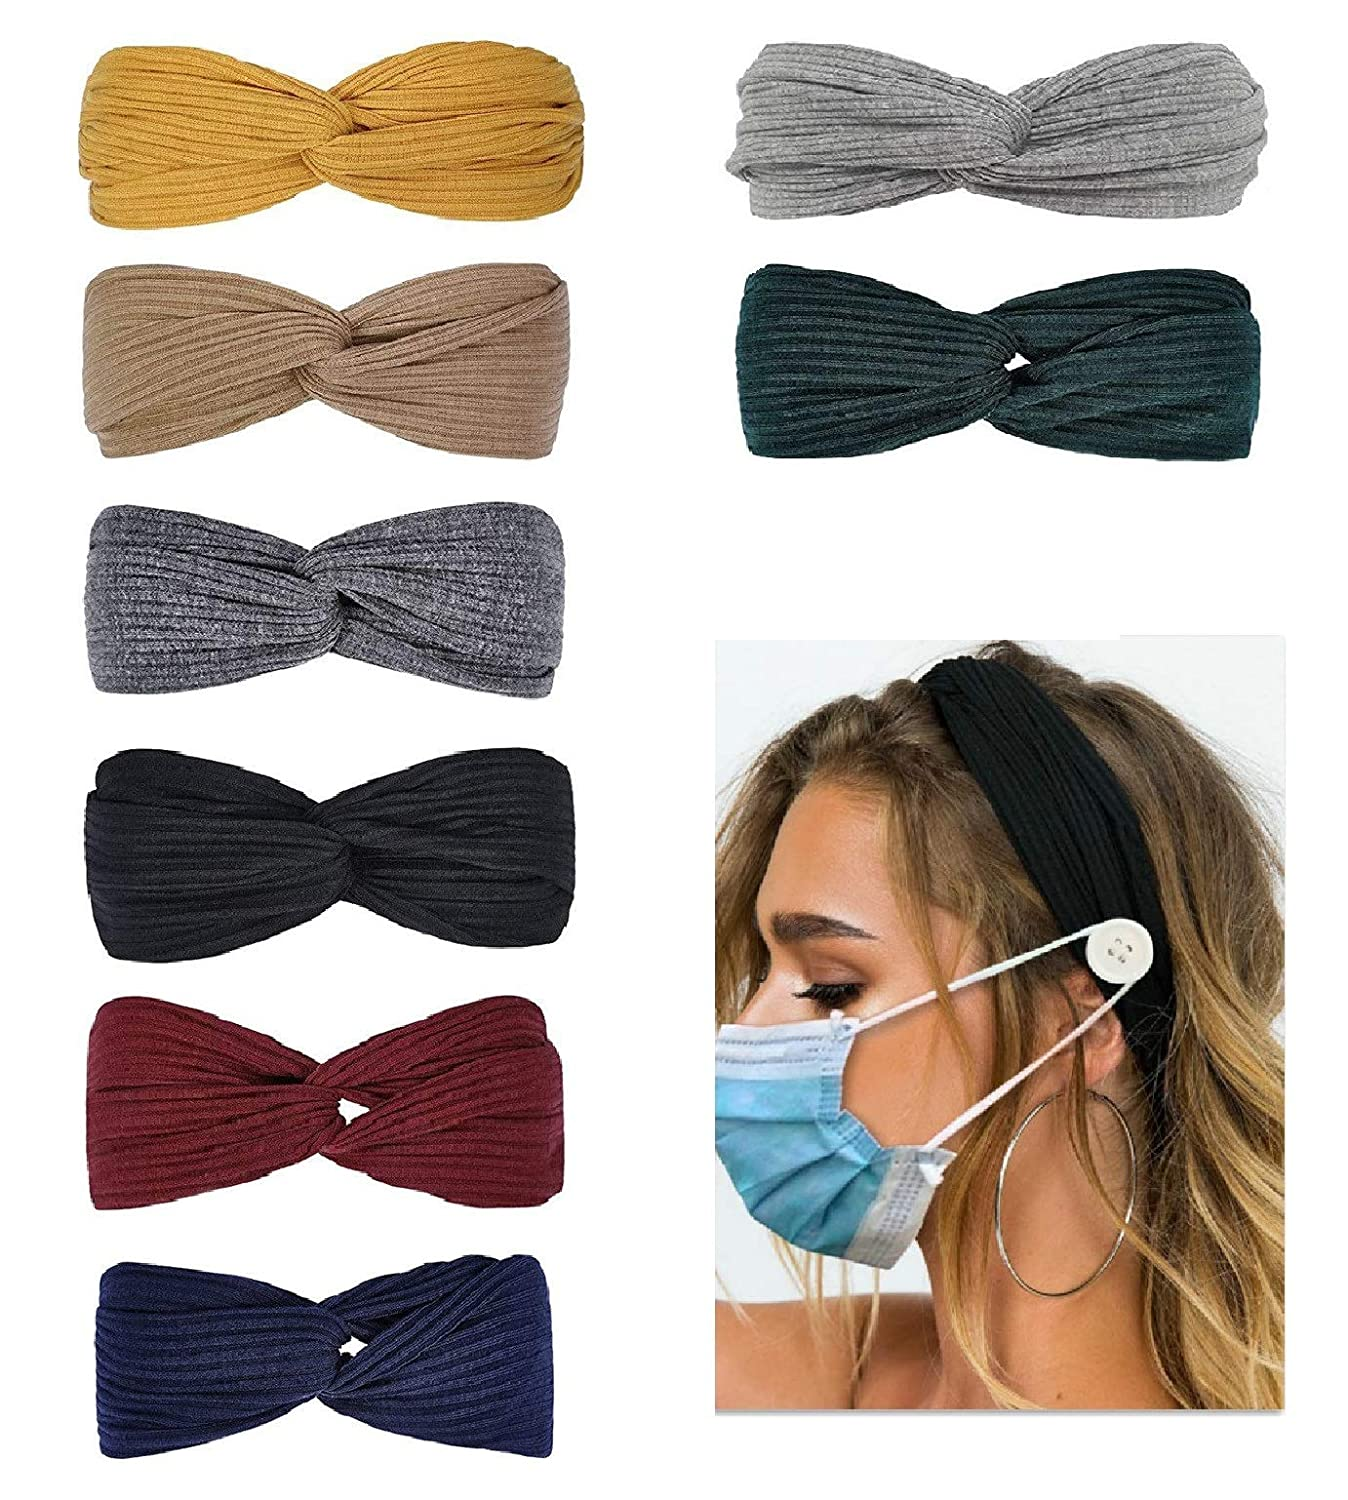 Huachi Headbands for Women Knotted Boho Stretchy Hair Bands for Girls Criss Cross Turban Plain Headwrap Yoga Workout Vintage Hair Accessories, Solid Color, 8Pcs : Beauty